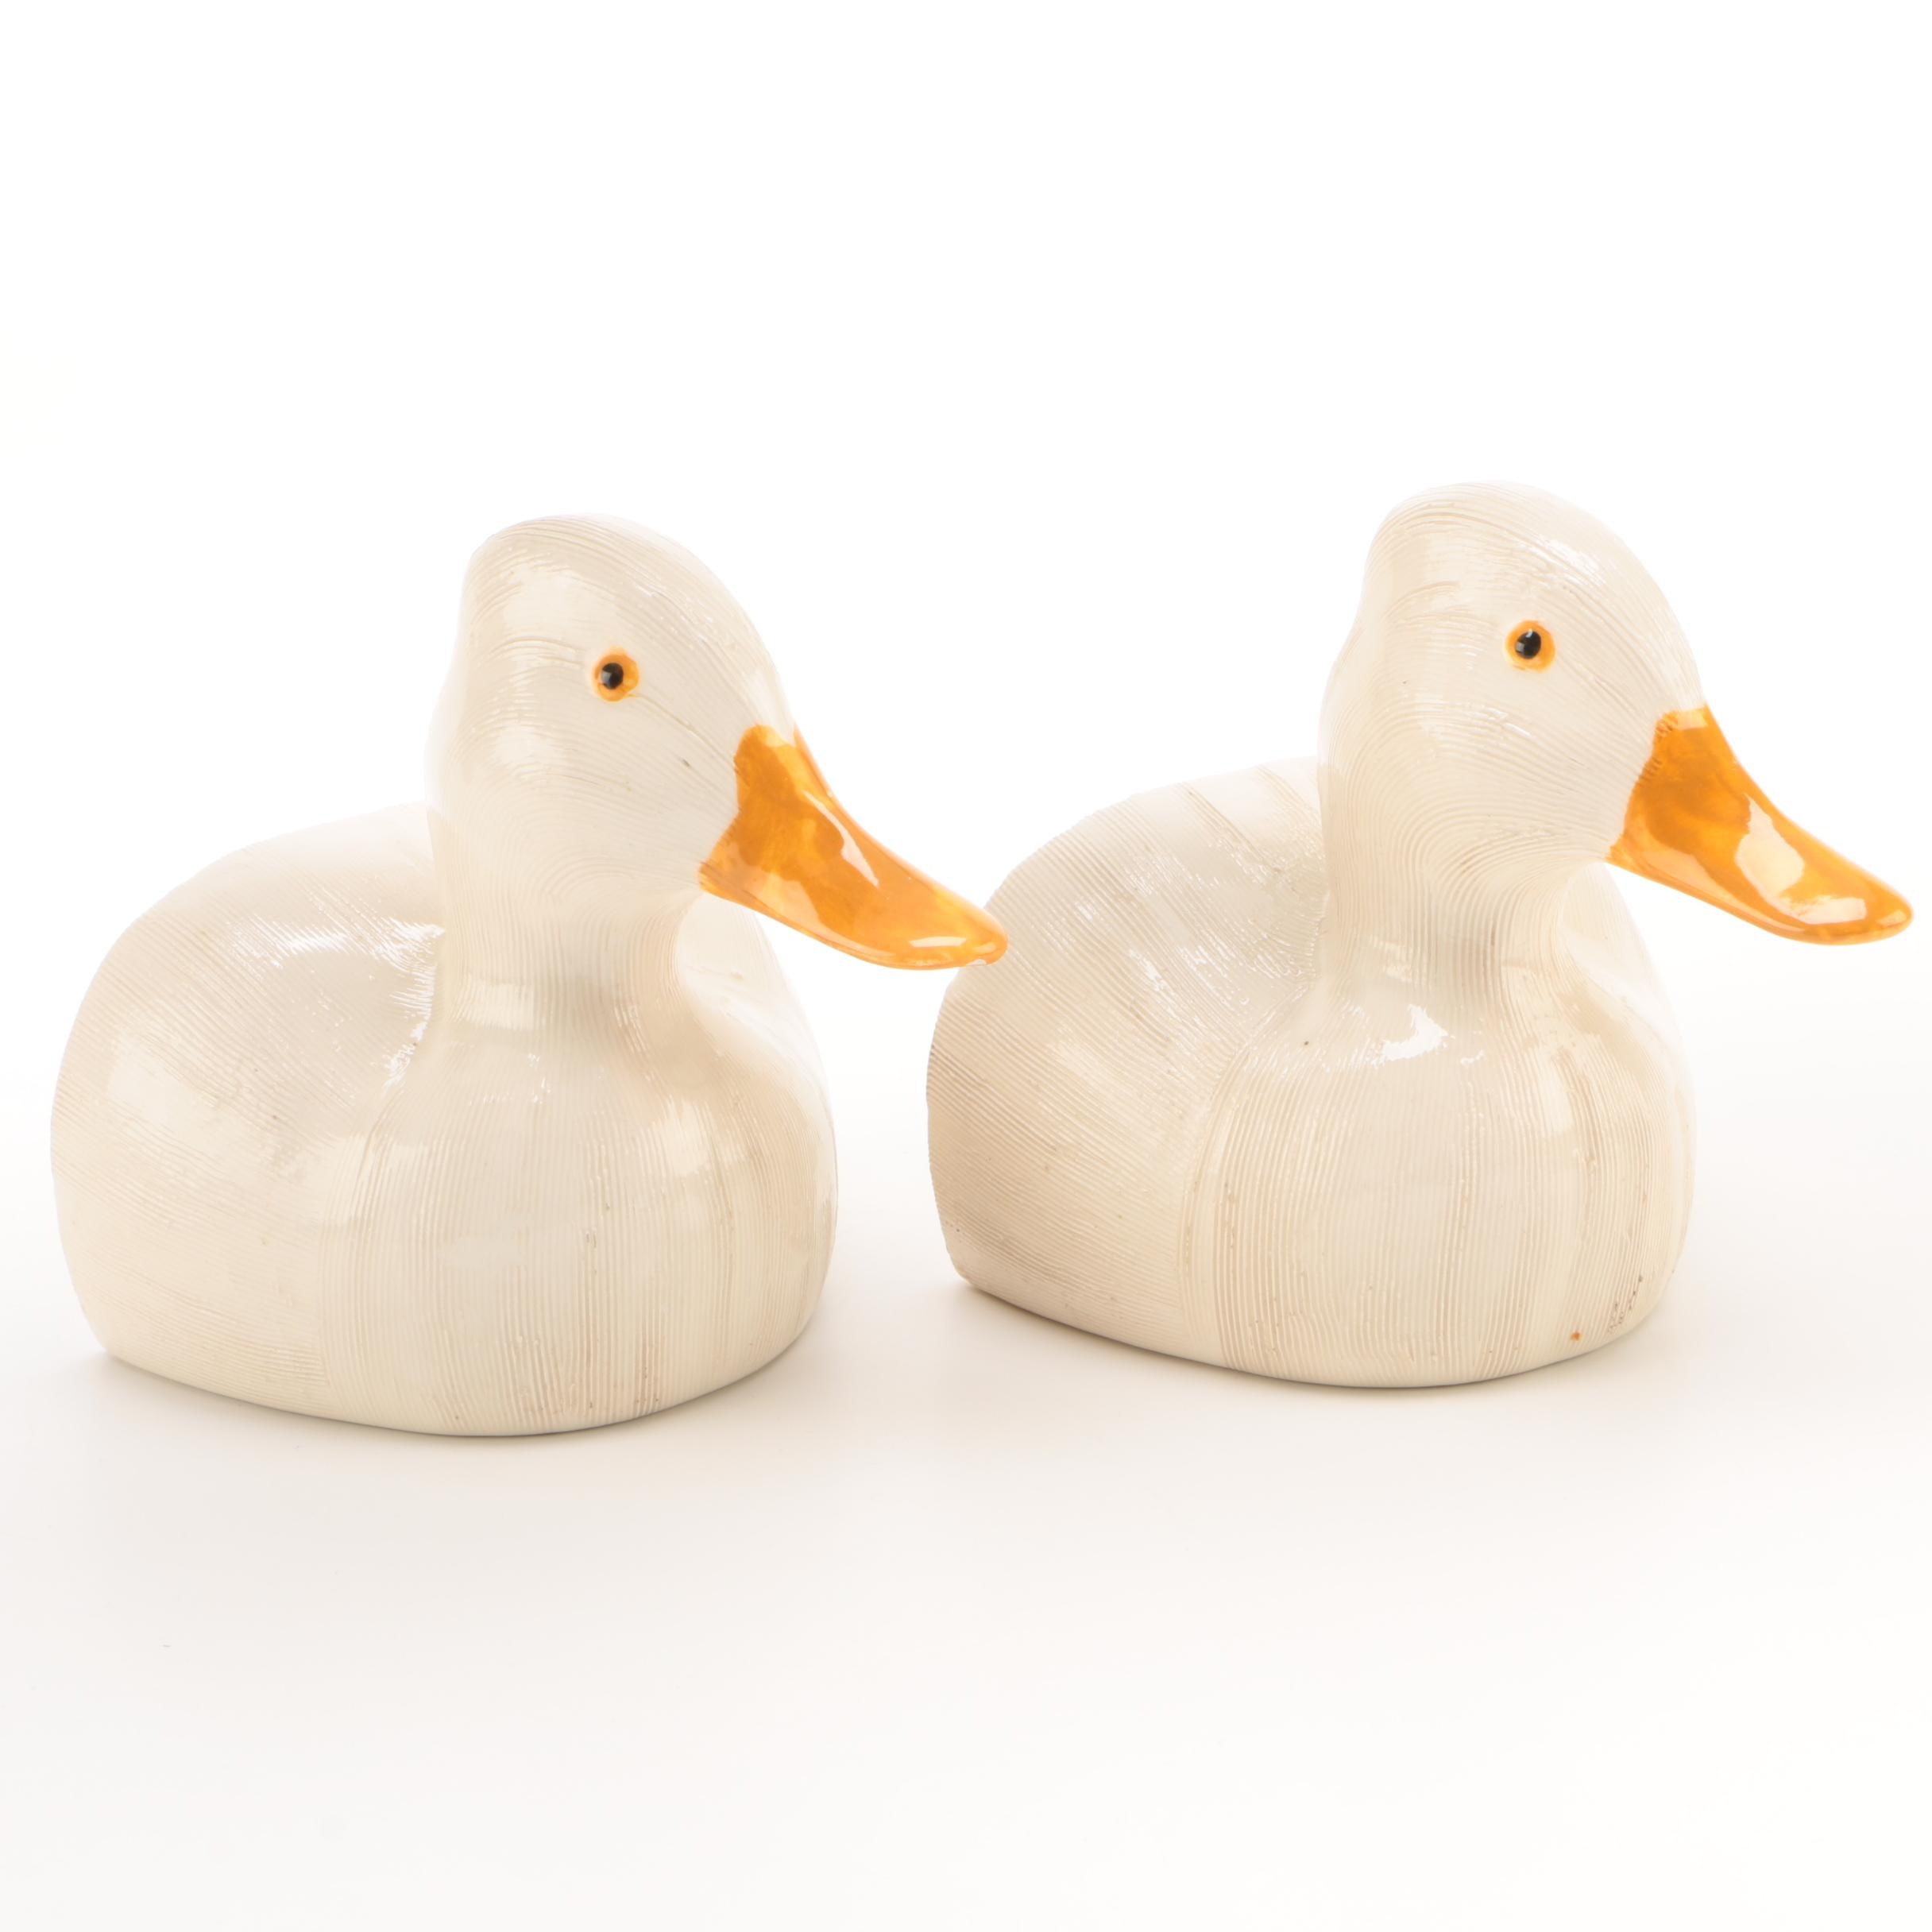 Plaster Duck Form Bookends